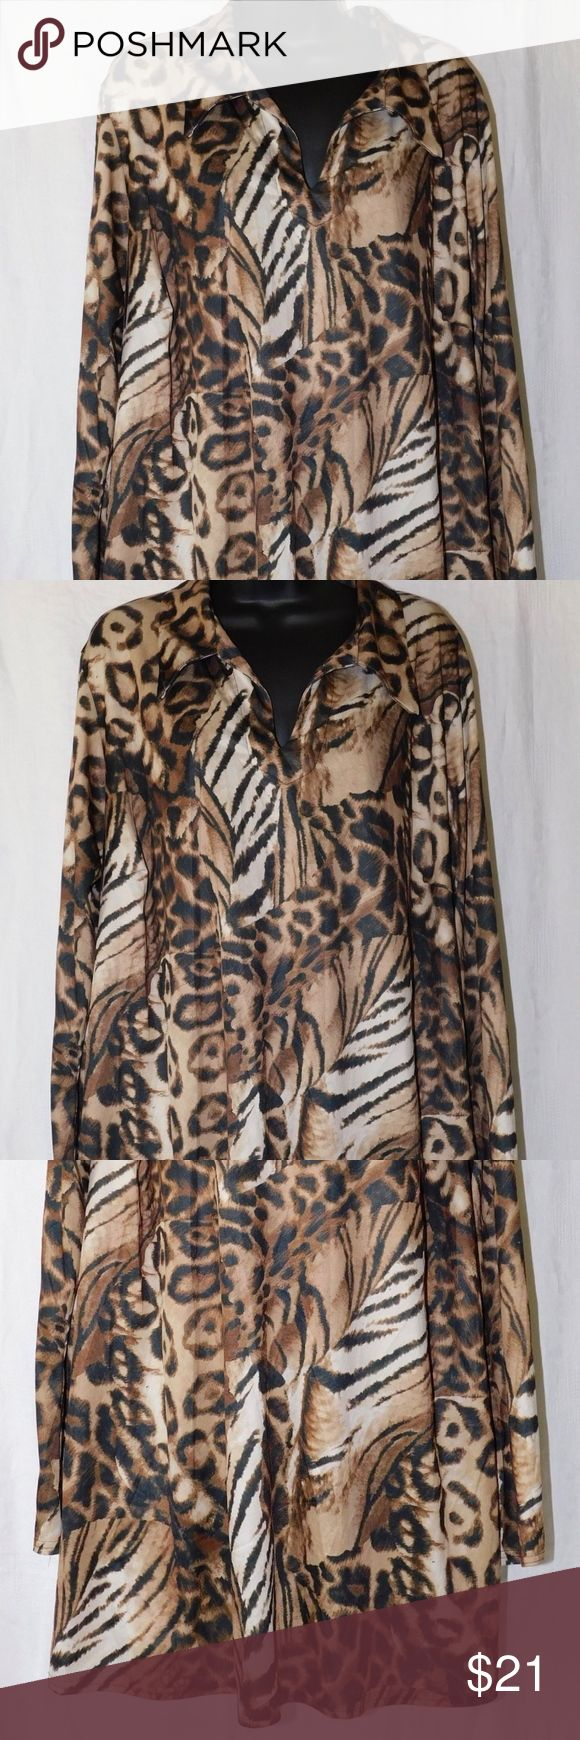 """Resource Animal Print Long Sleeve Tunic Top Resource Animal Print Long Sleeve Women's Slip-On Blouse Tunic Top  Details: Plus Size: 22-24 Long Sleeves Collar no button slip on style Vent slits at the hemline Approximate Measurements taken laying flat: 26"""" Armpit to armpit 34"""" Length from shoulder to hem 24"""" Sleeve length from shoulder to hem 100% polyester; Machine wash  In very good pre-owned condition   From a Smoke Free/Pet Free Home Resource Tops Tunics"""